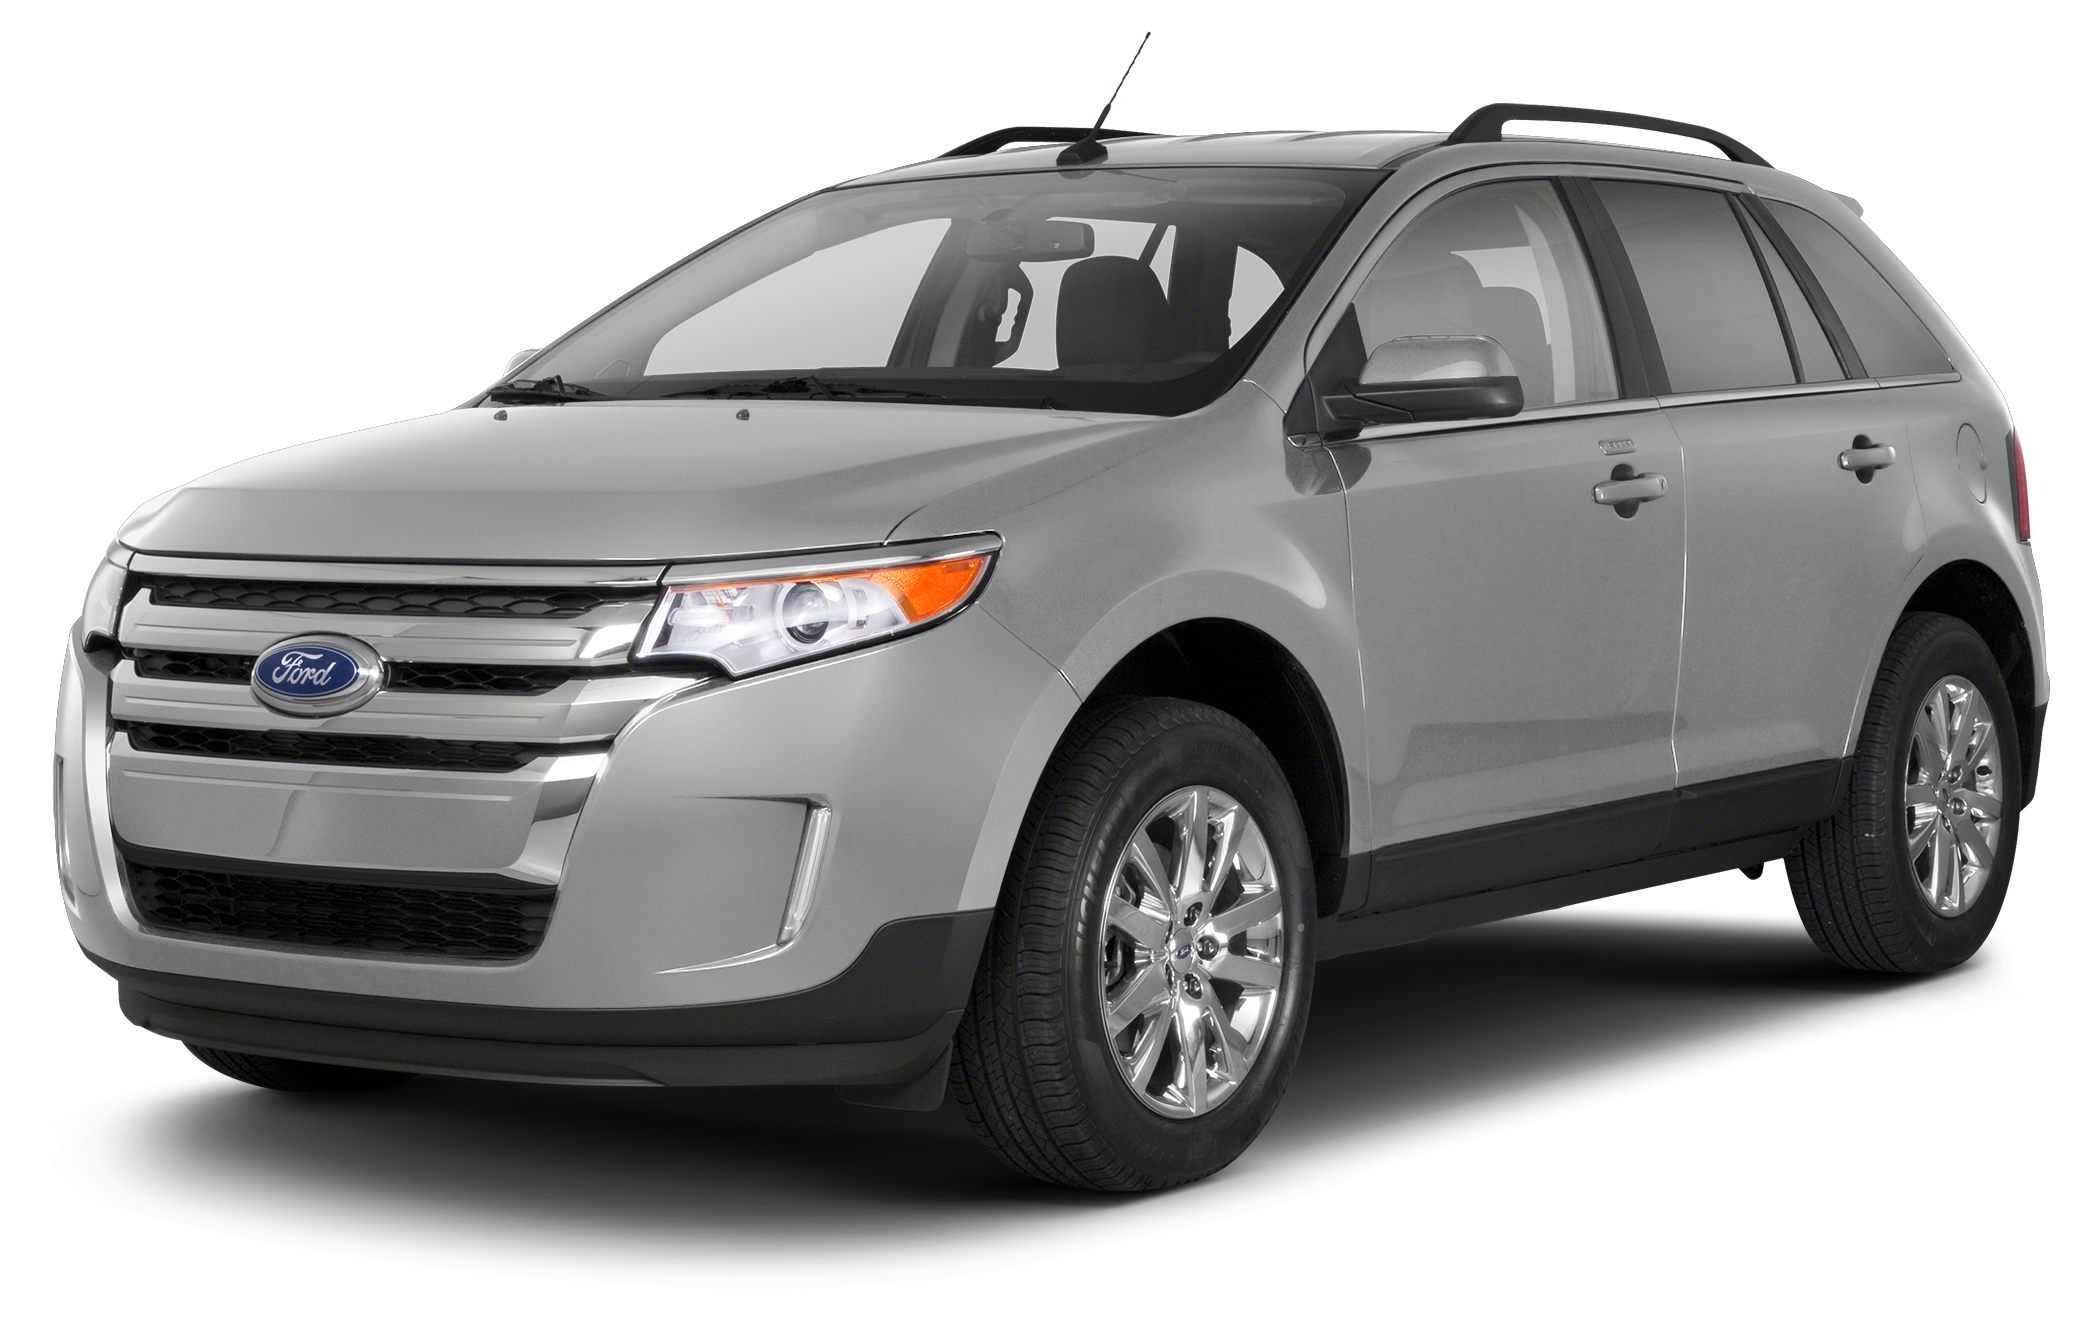 2013 Ford Edge Limited Come see this 2013 Ford Edge Limited Its Automatic transmission and Gas V6